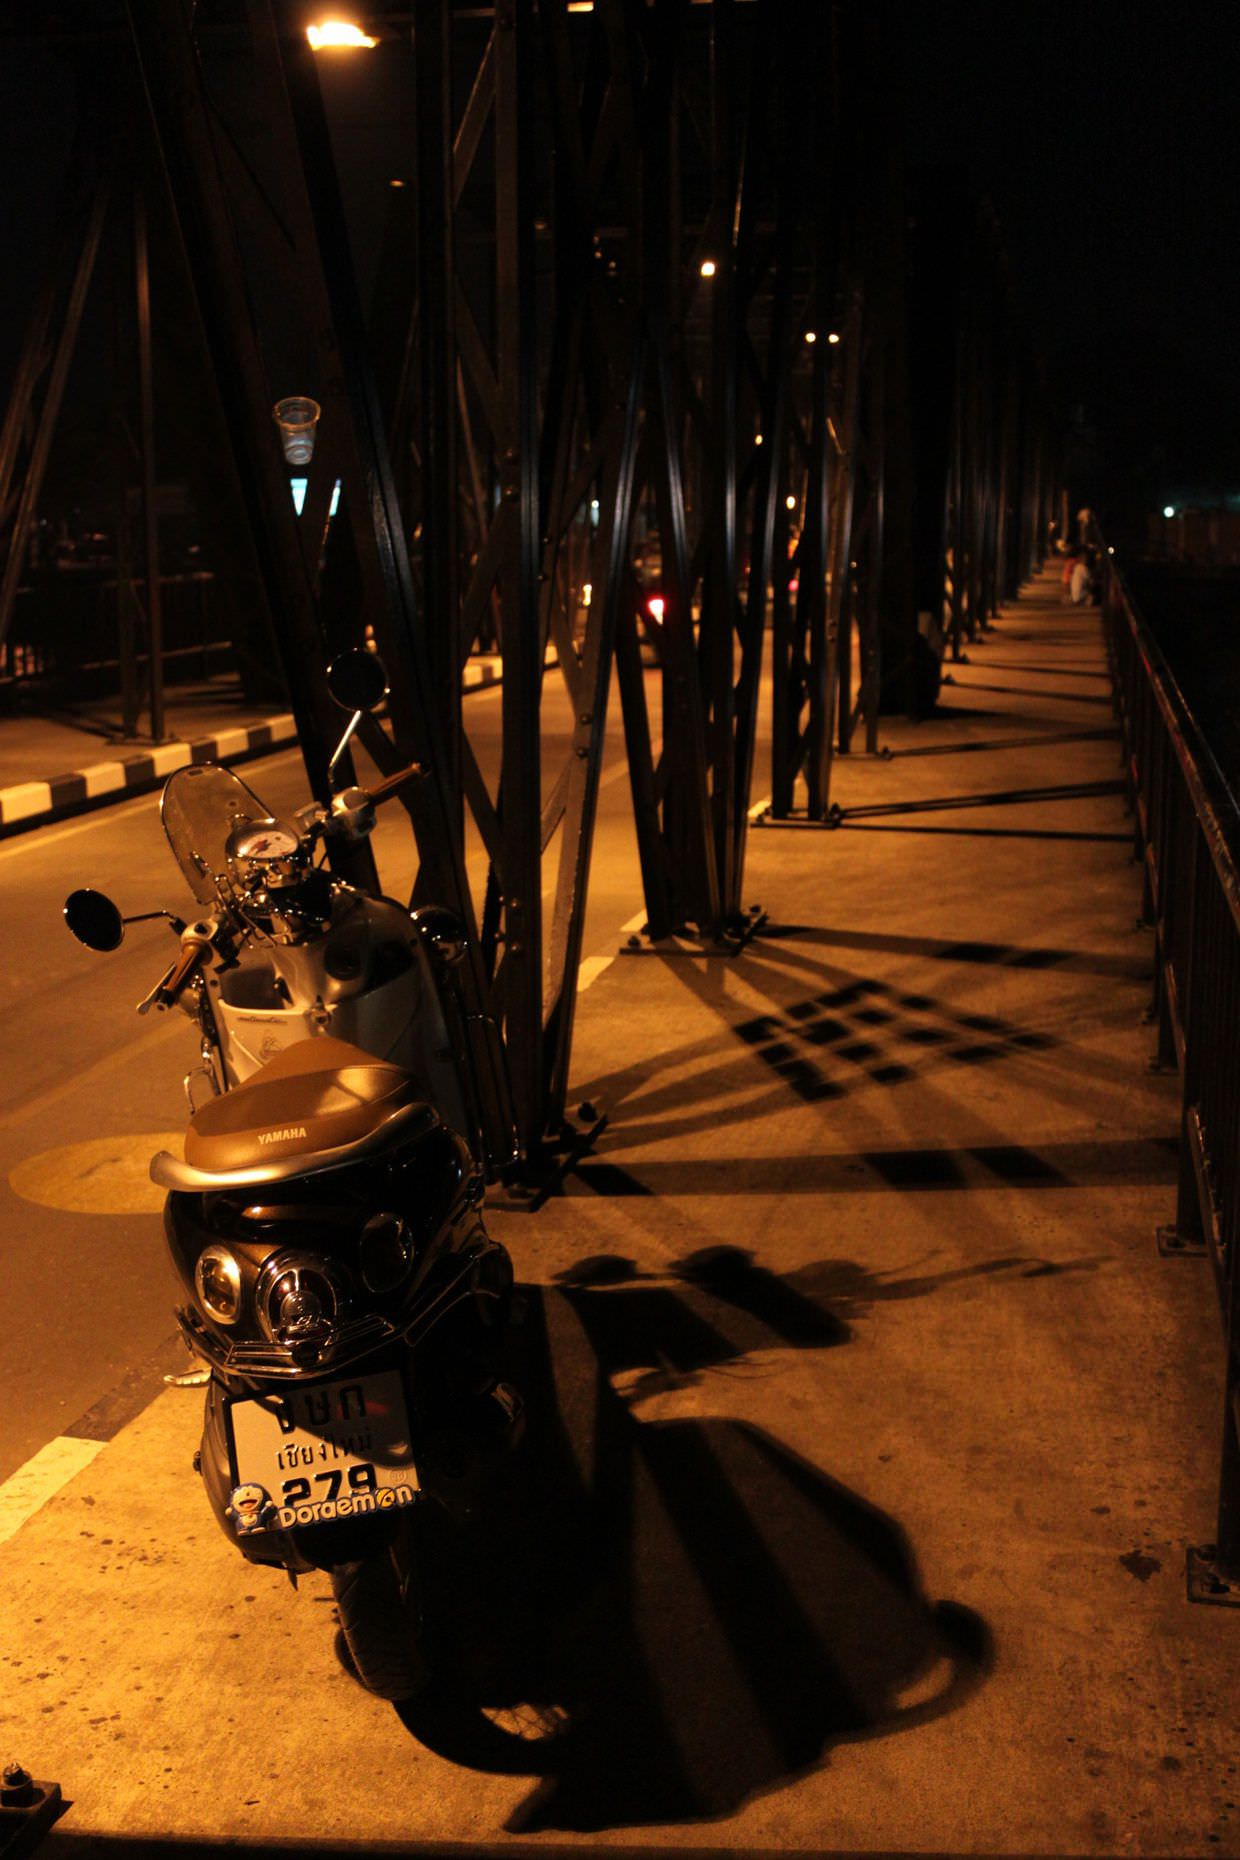 Scooter on Chiang Mai's iron bridge